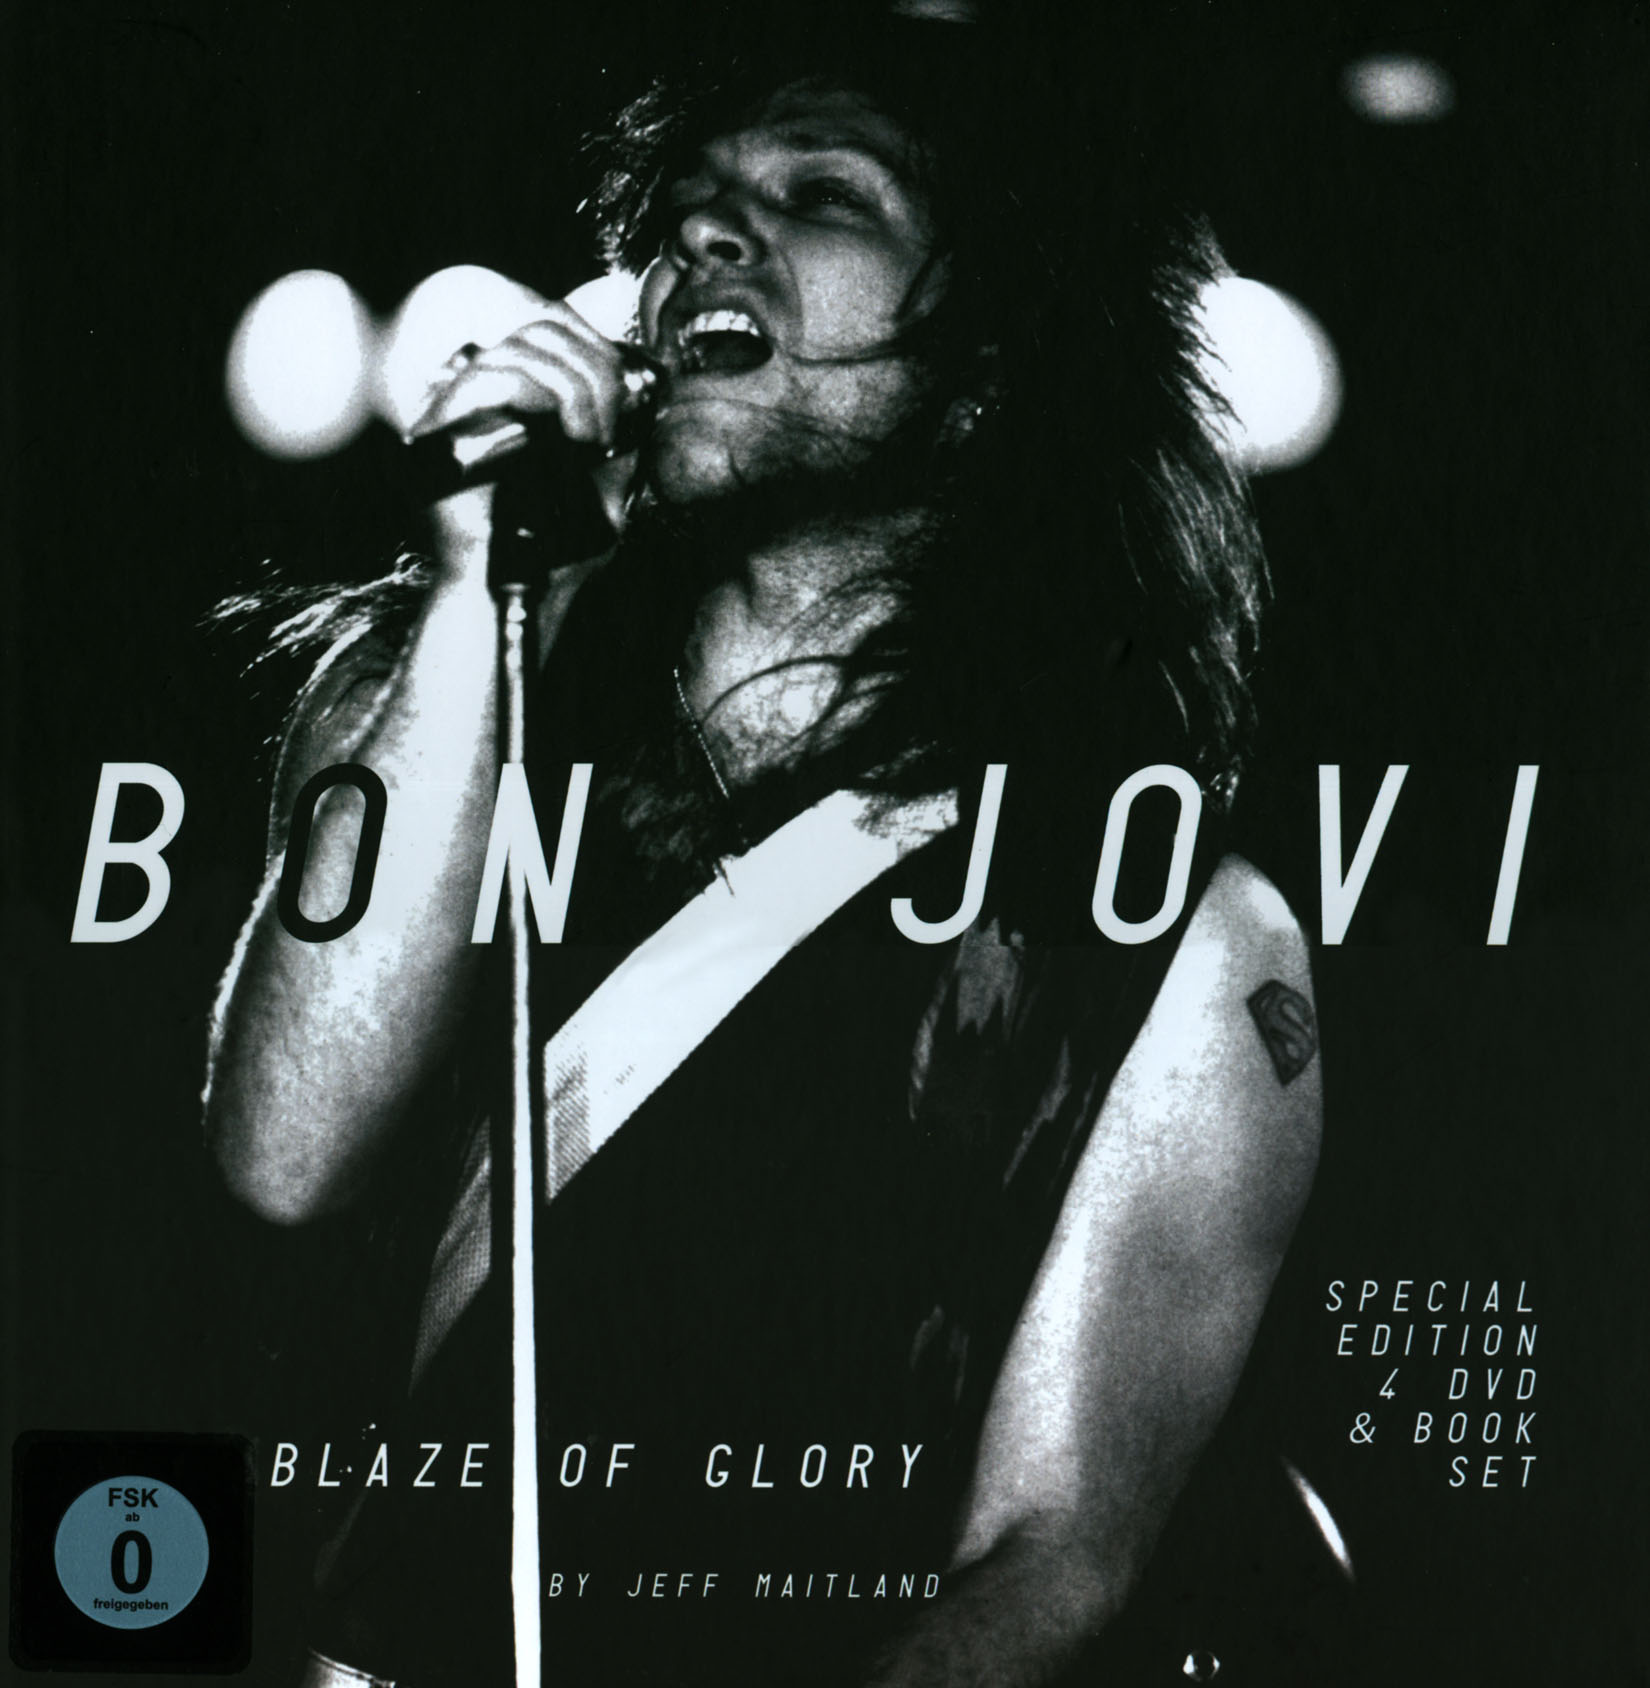 Bon Jovi: Blaze of Glory